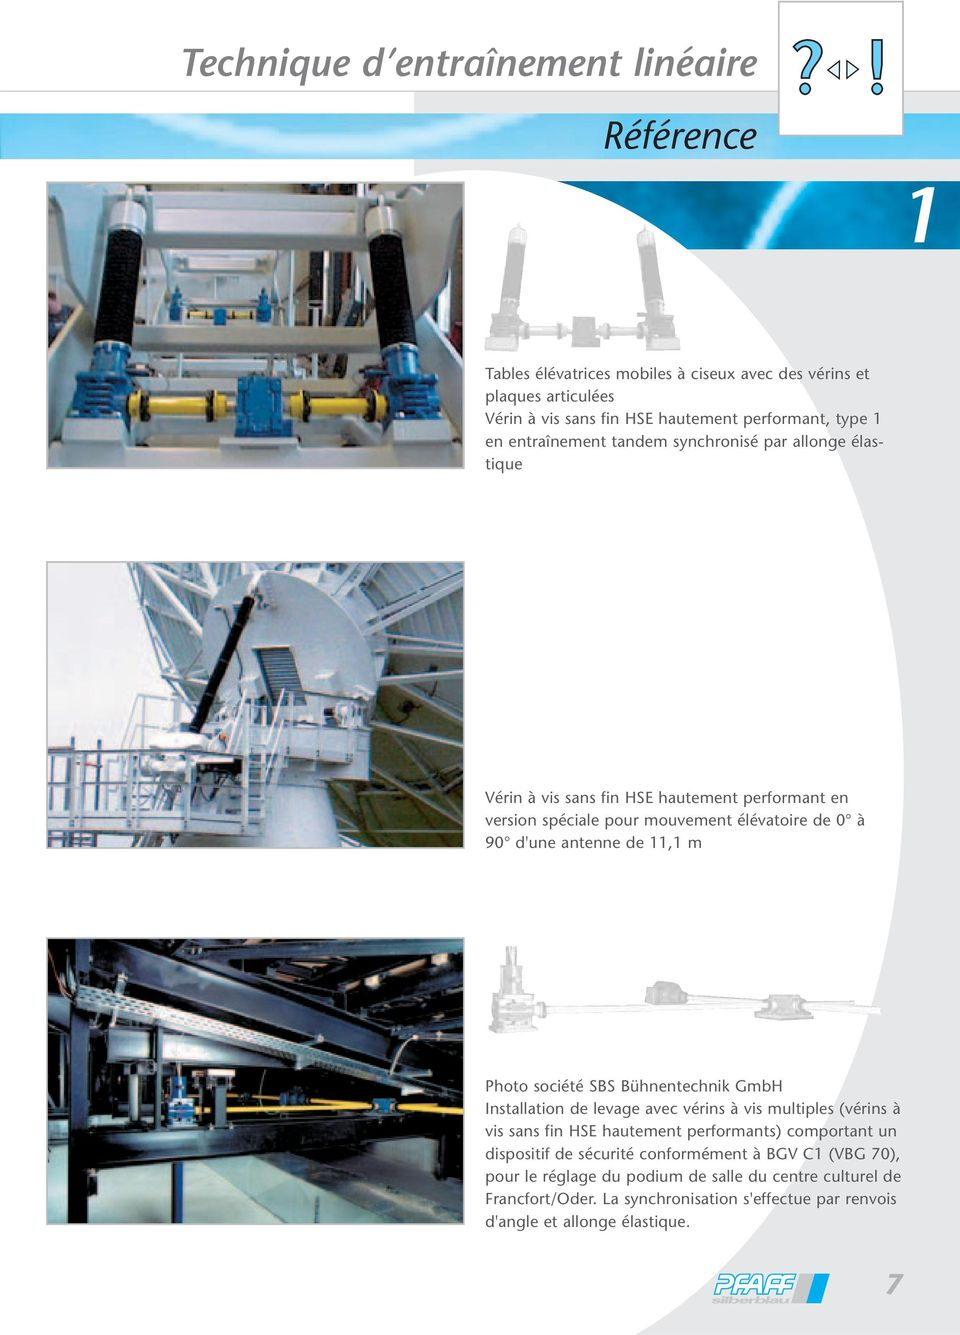 m Photo société SBS Bühnentechnik GmbH Installation de levage avec vérins à vis multiples (vérins à vis sans fin HSE hautement performants) comportant un dispositif de sécurité